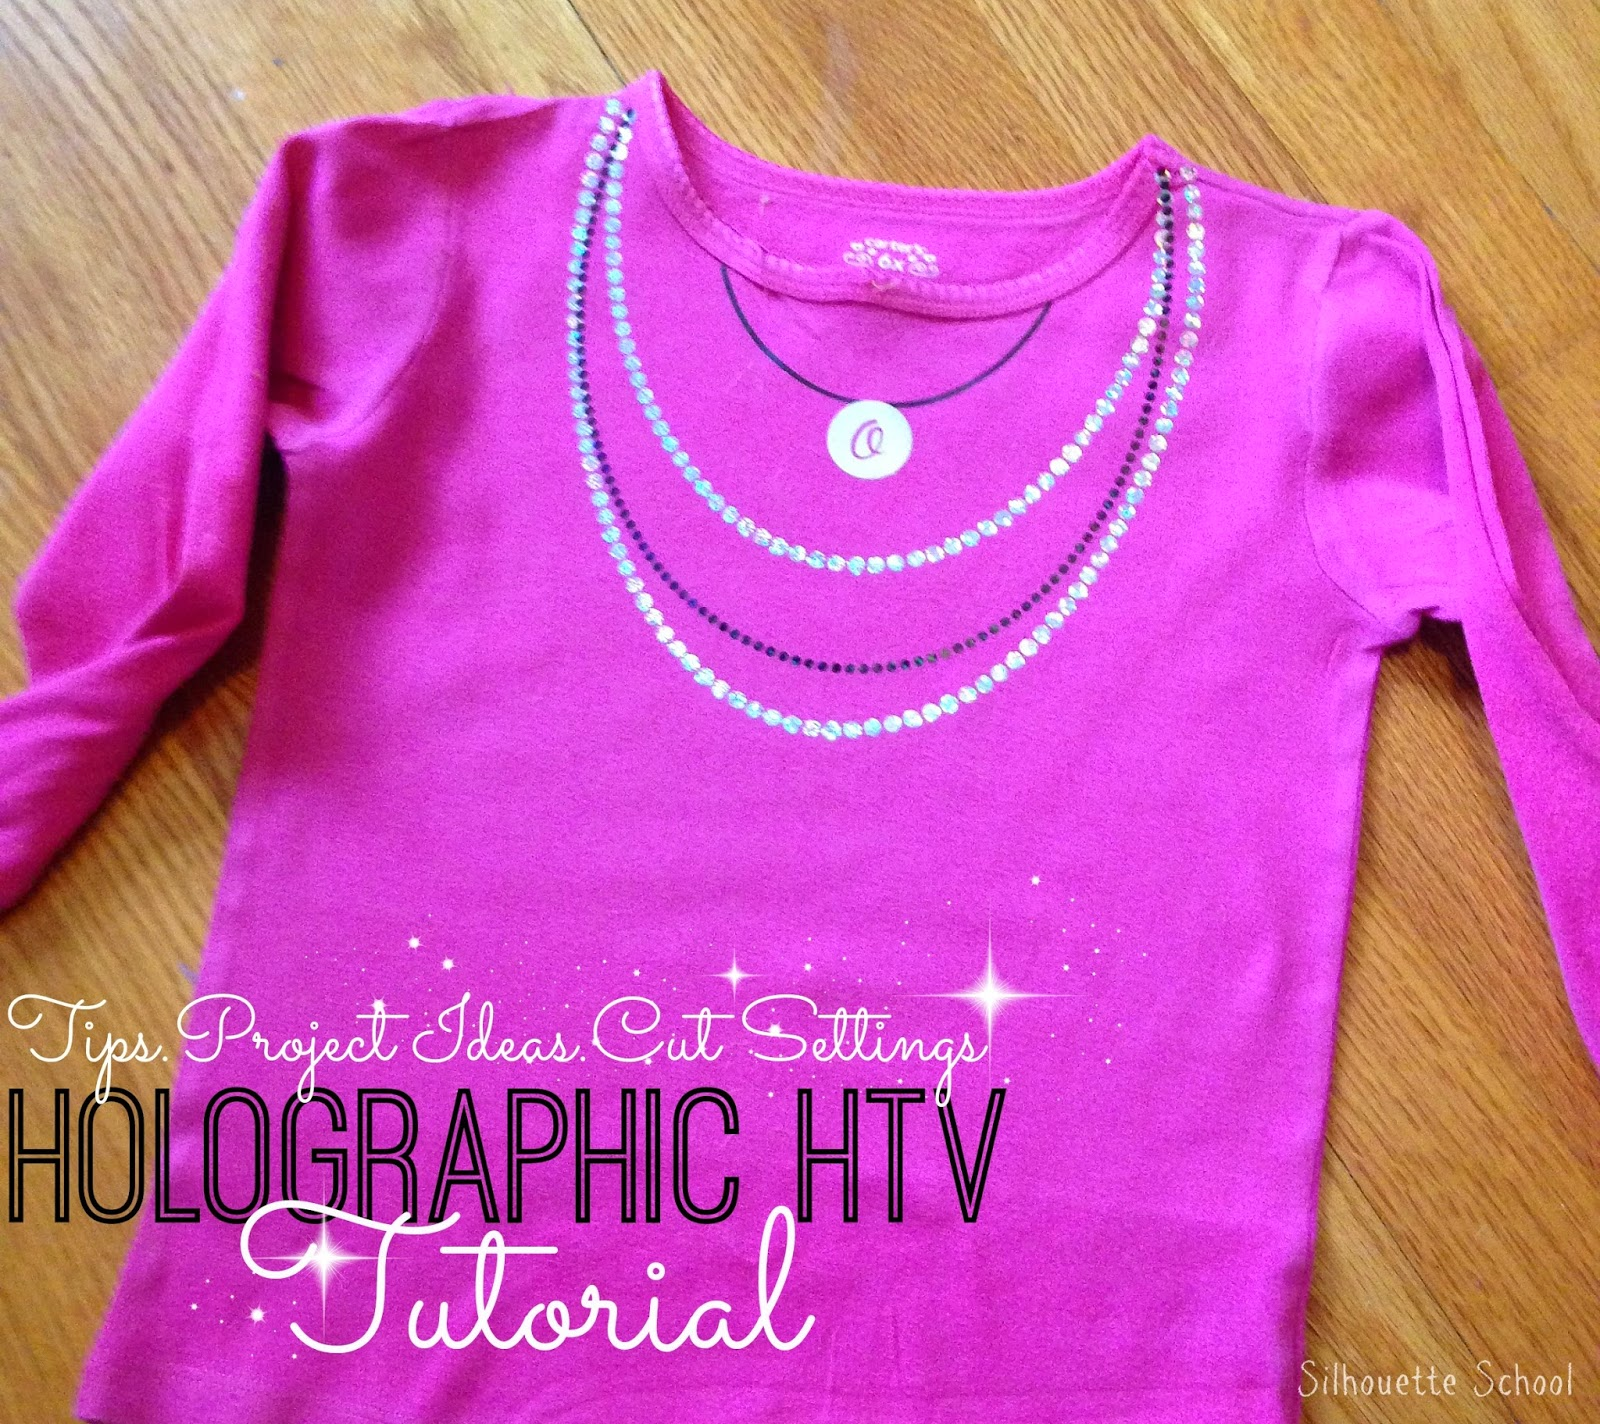 holographic, heat transfer vinyl, HTV, Silhouette Studio, free cut file